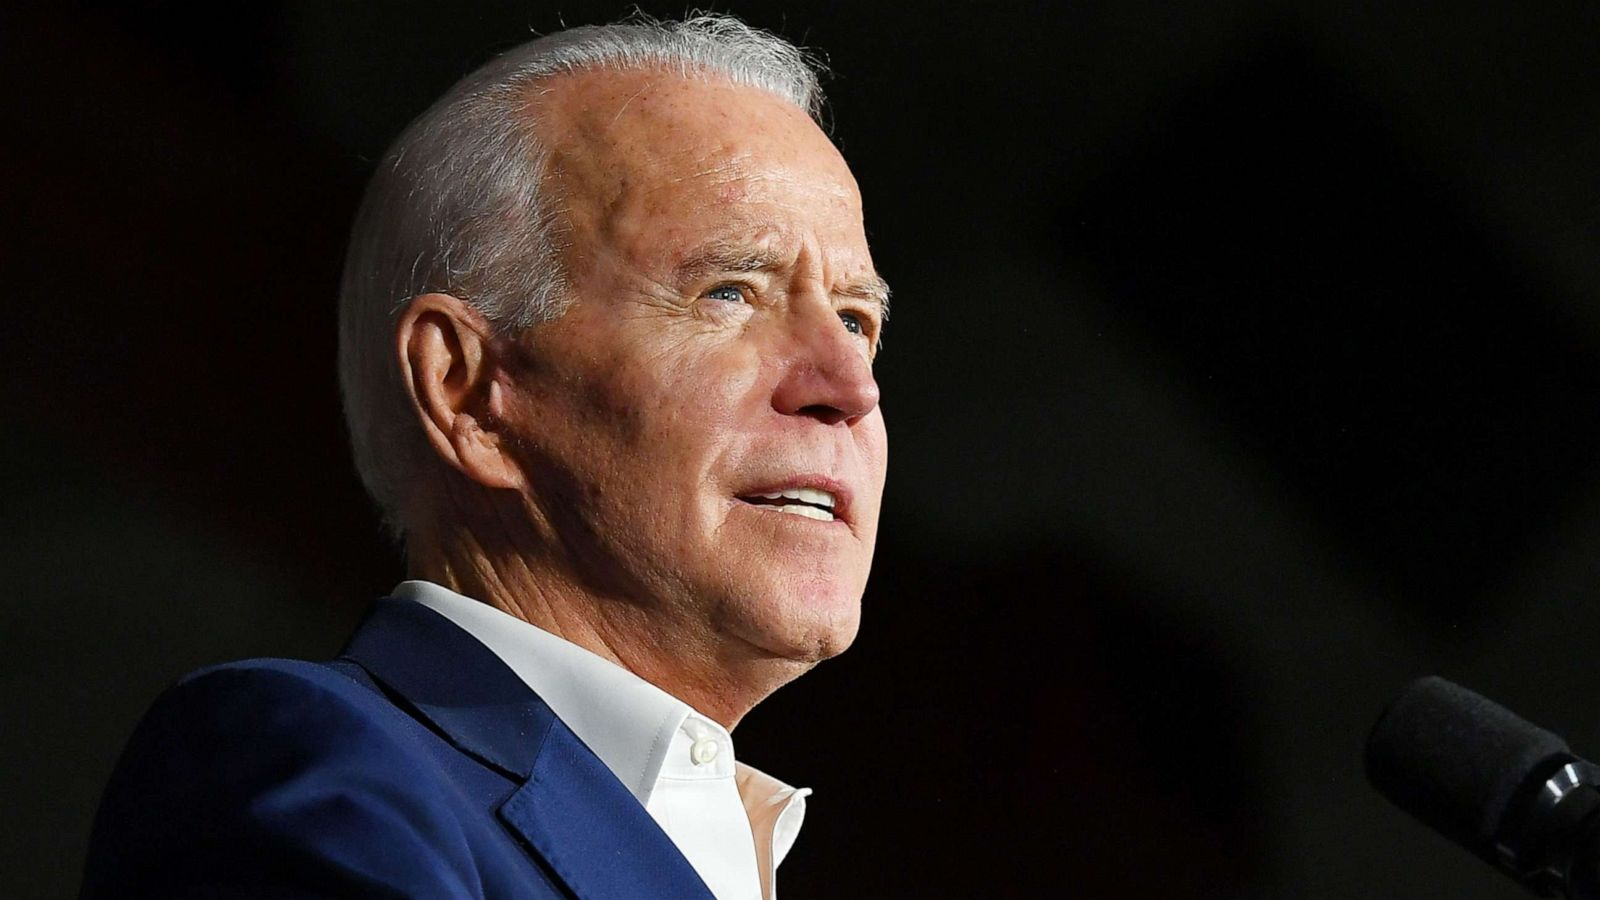 Who should Joe Biden nominate for VP? Three biblical commitments we owe his selection